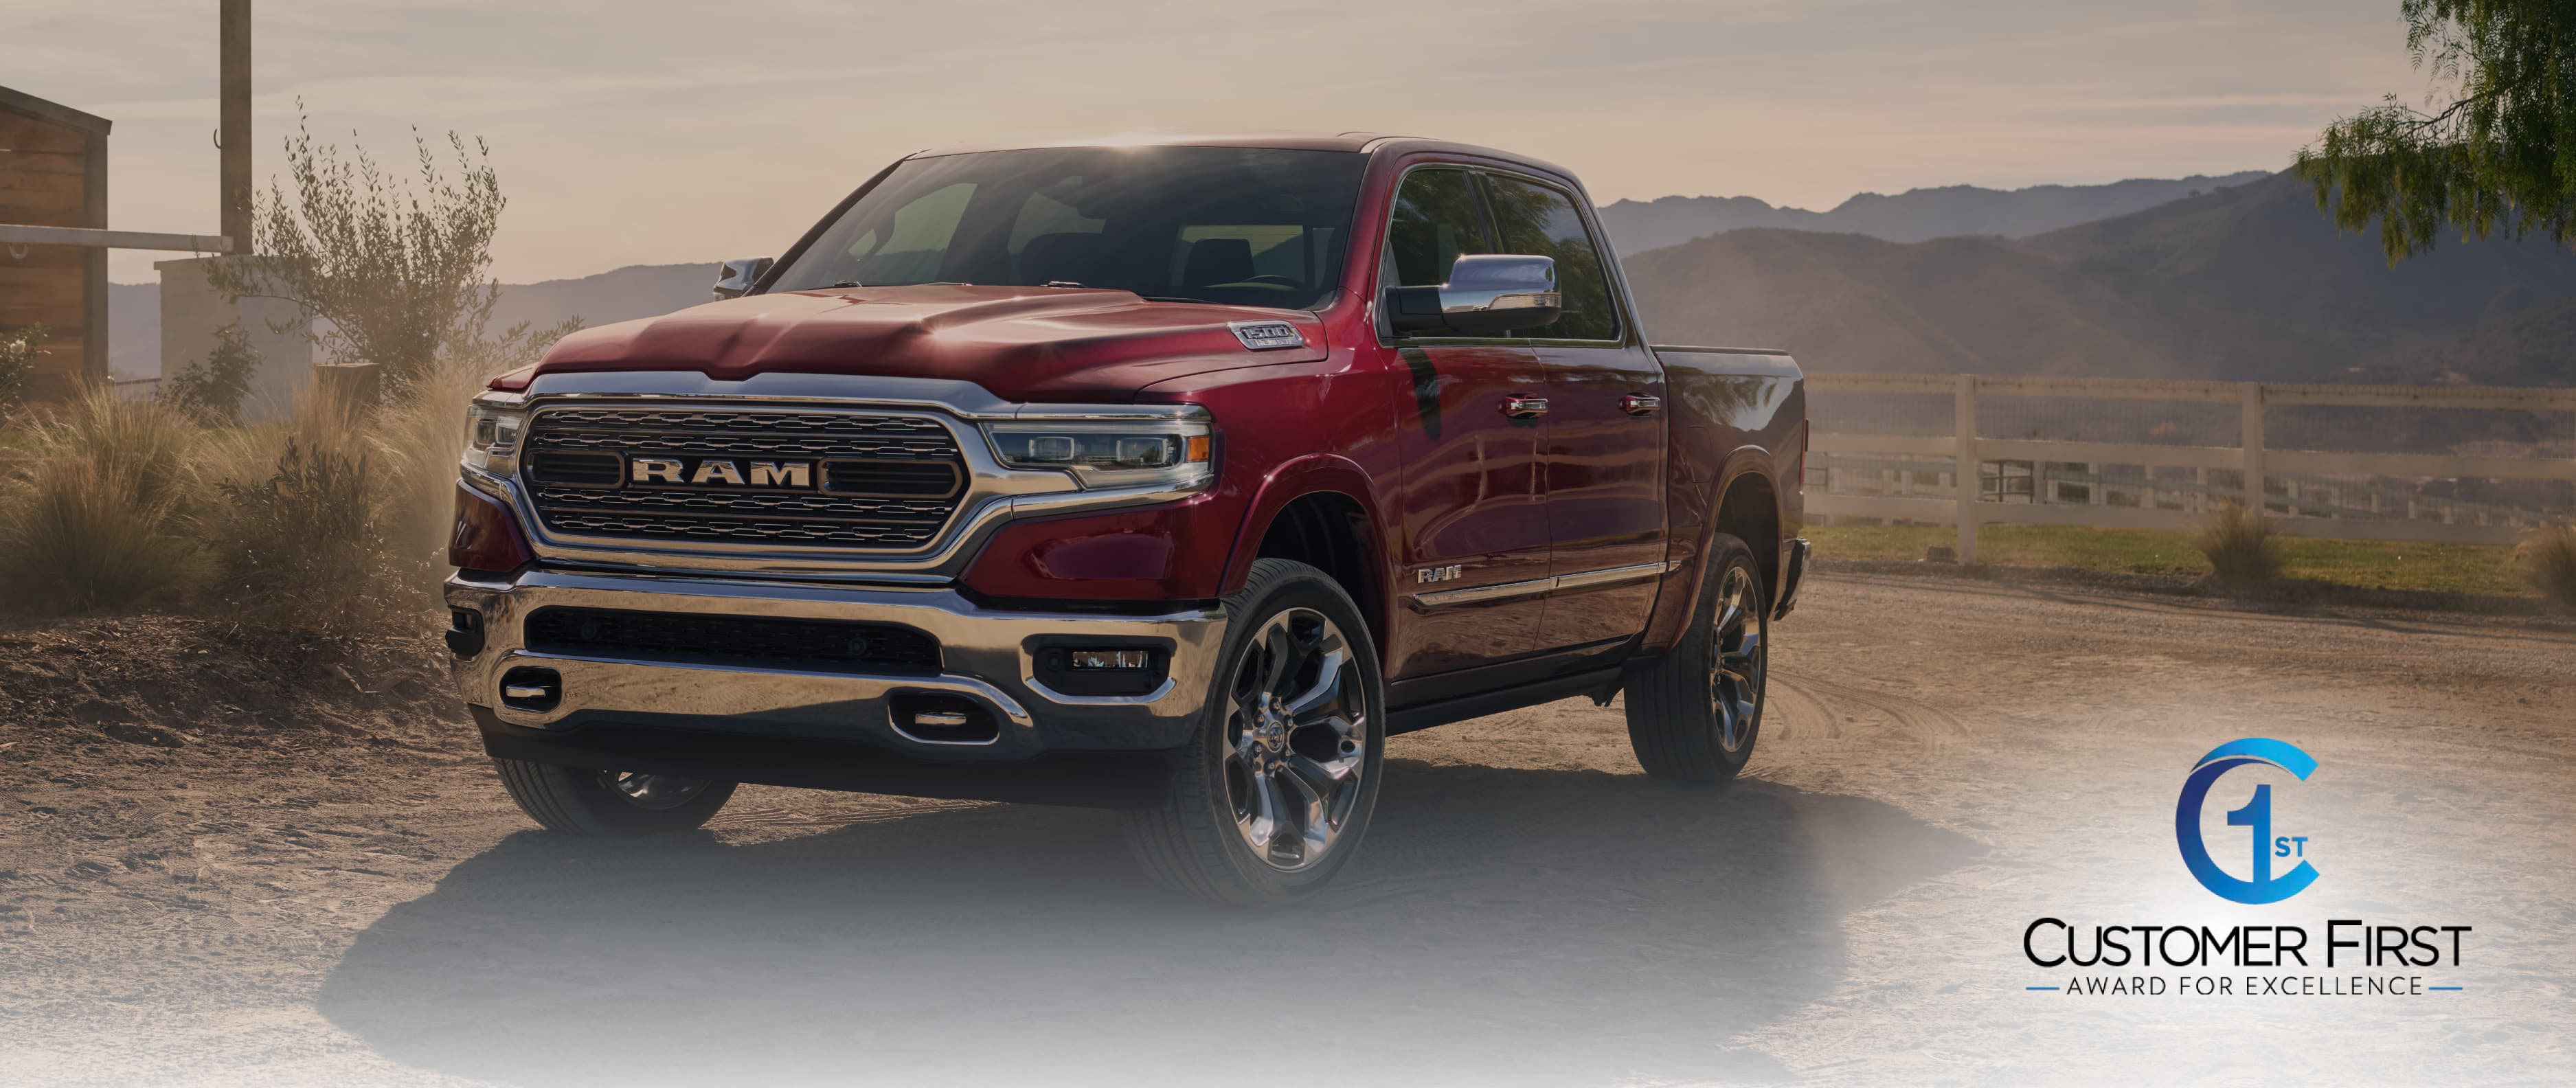 Dodge Dealership Houston Tx >> Dodge Chrysler Jeep Ram Dealer Houston Pasadena Pearland Tx New